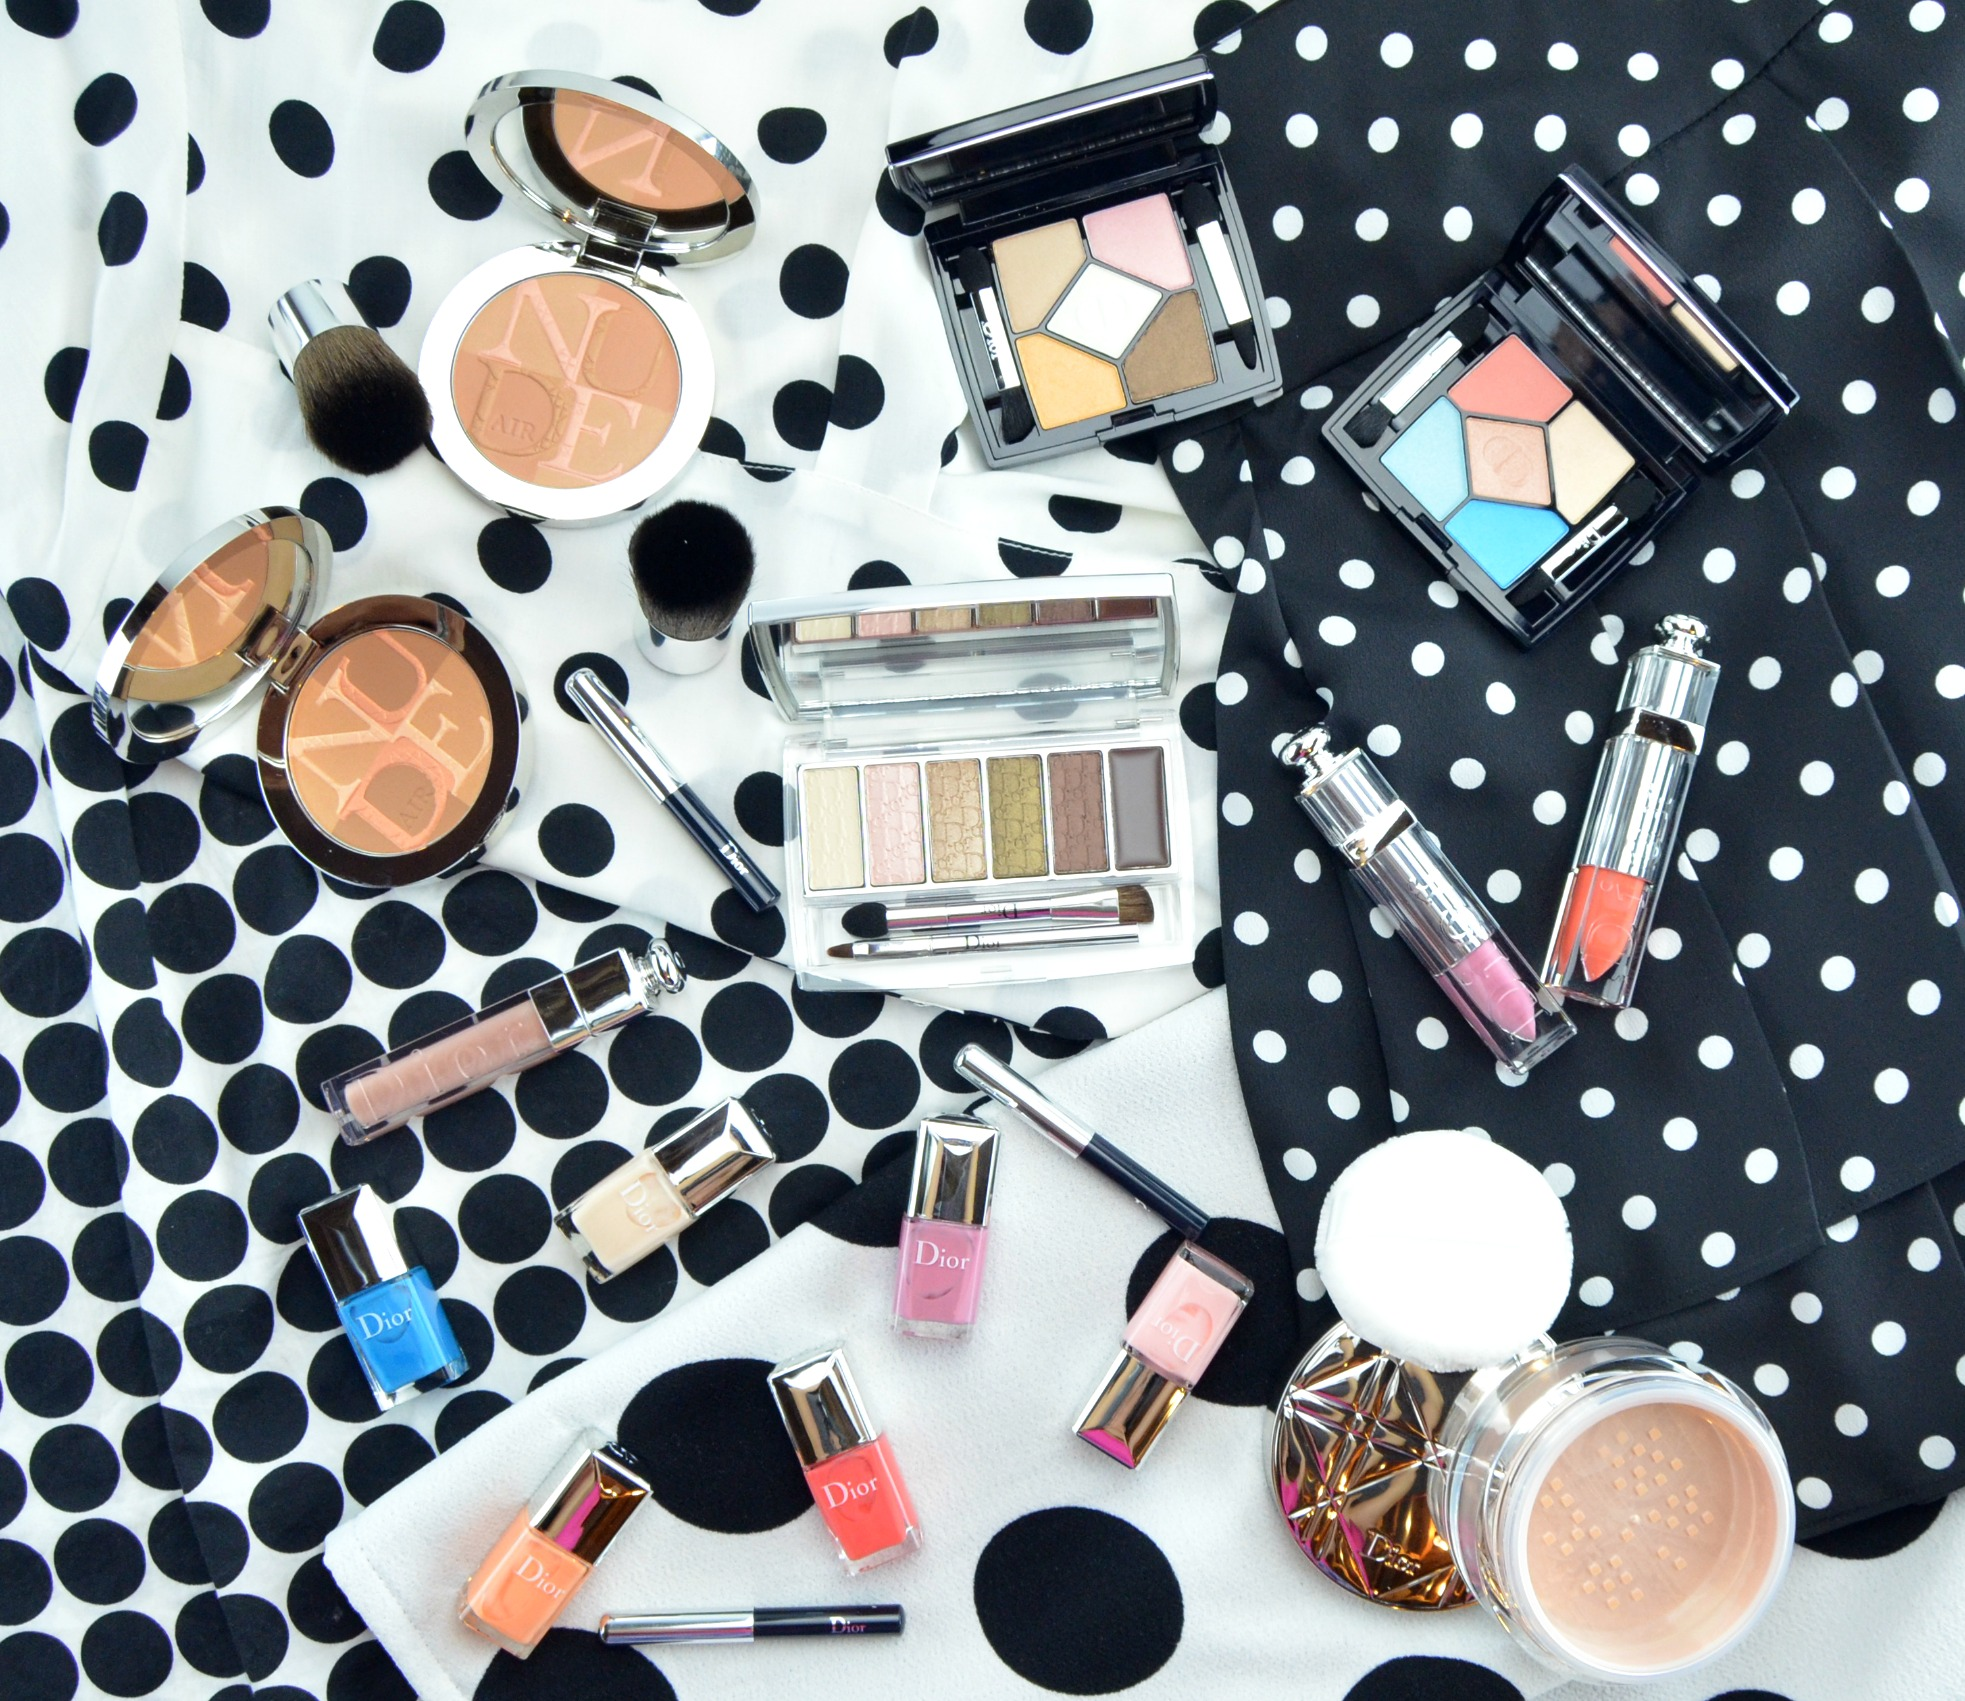 Dior Summer 2016 Milky Dots Collection  (1)